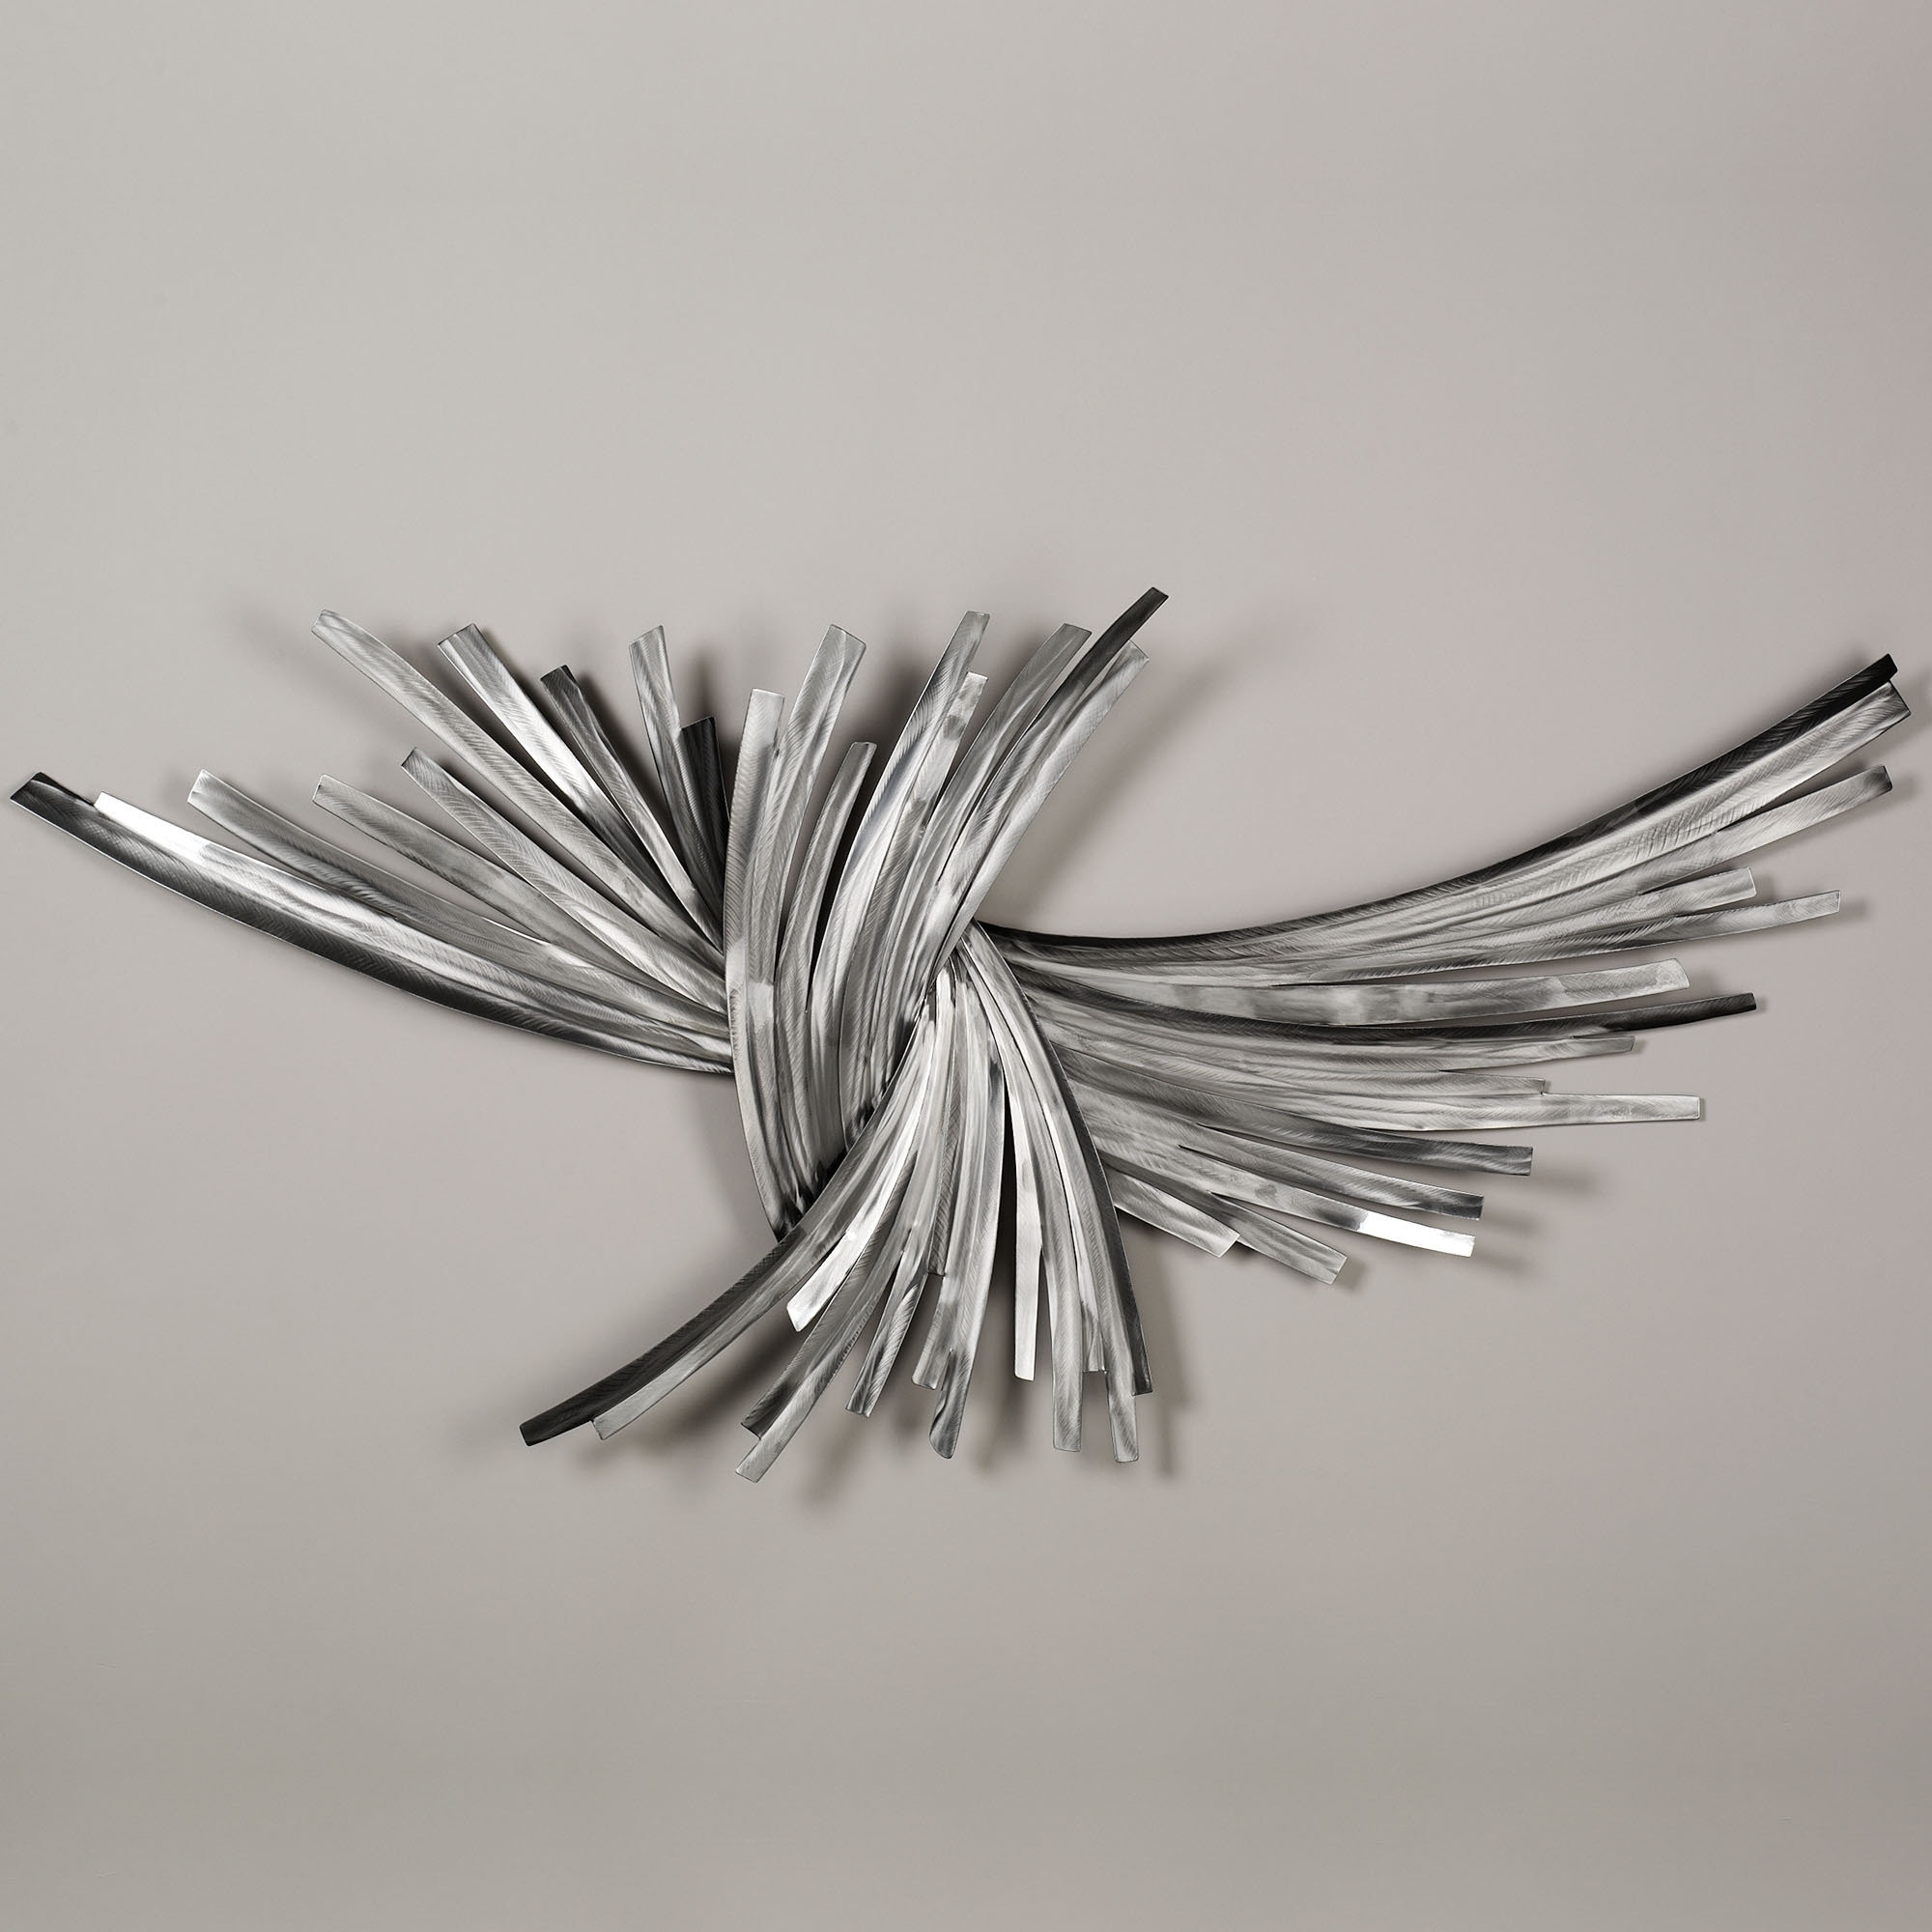 Most Recently Released Metal Wall Art Sculptures With Infinity Silver Metal Wall Sculpture Design Of Metal Fish Wall Art (View 10 of 15)